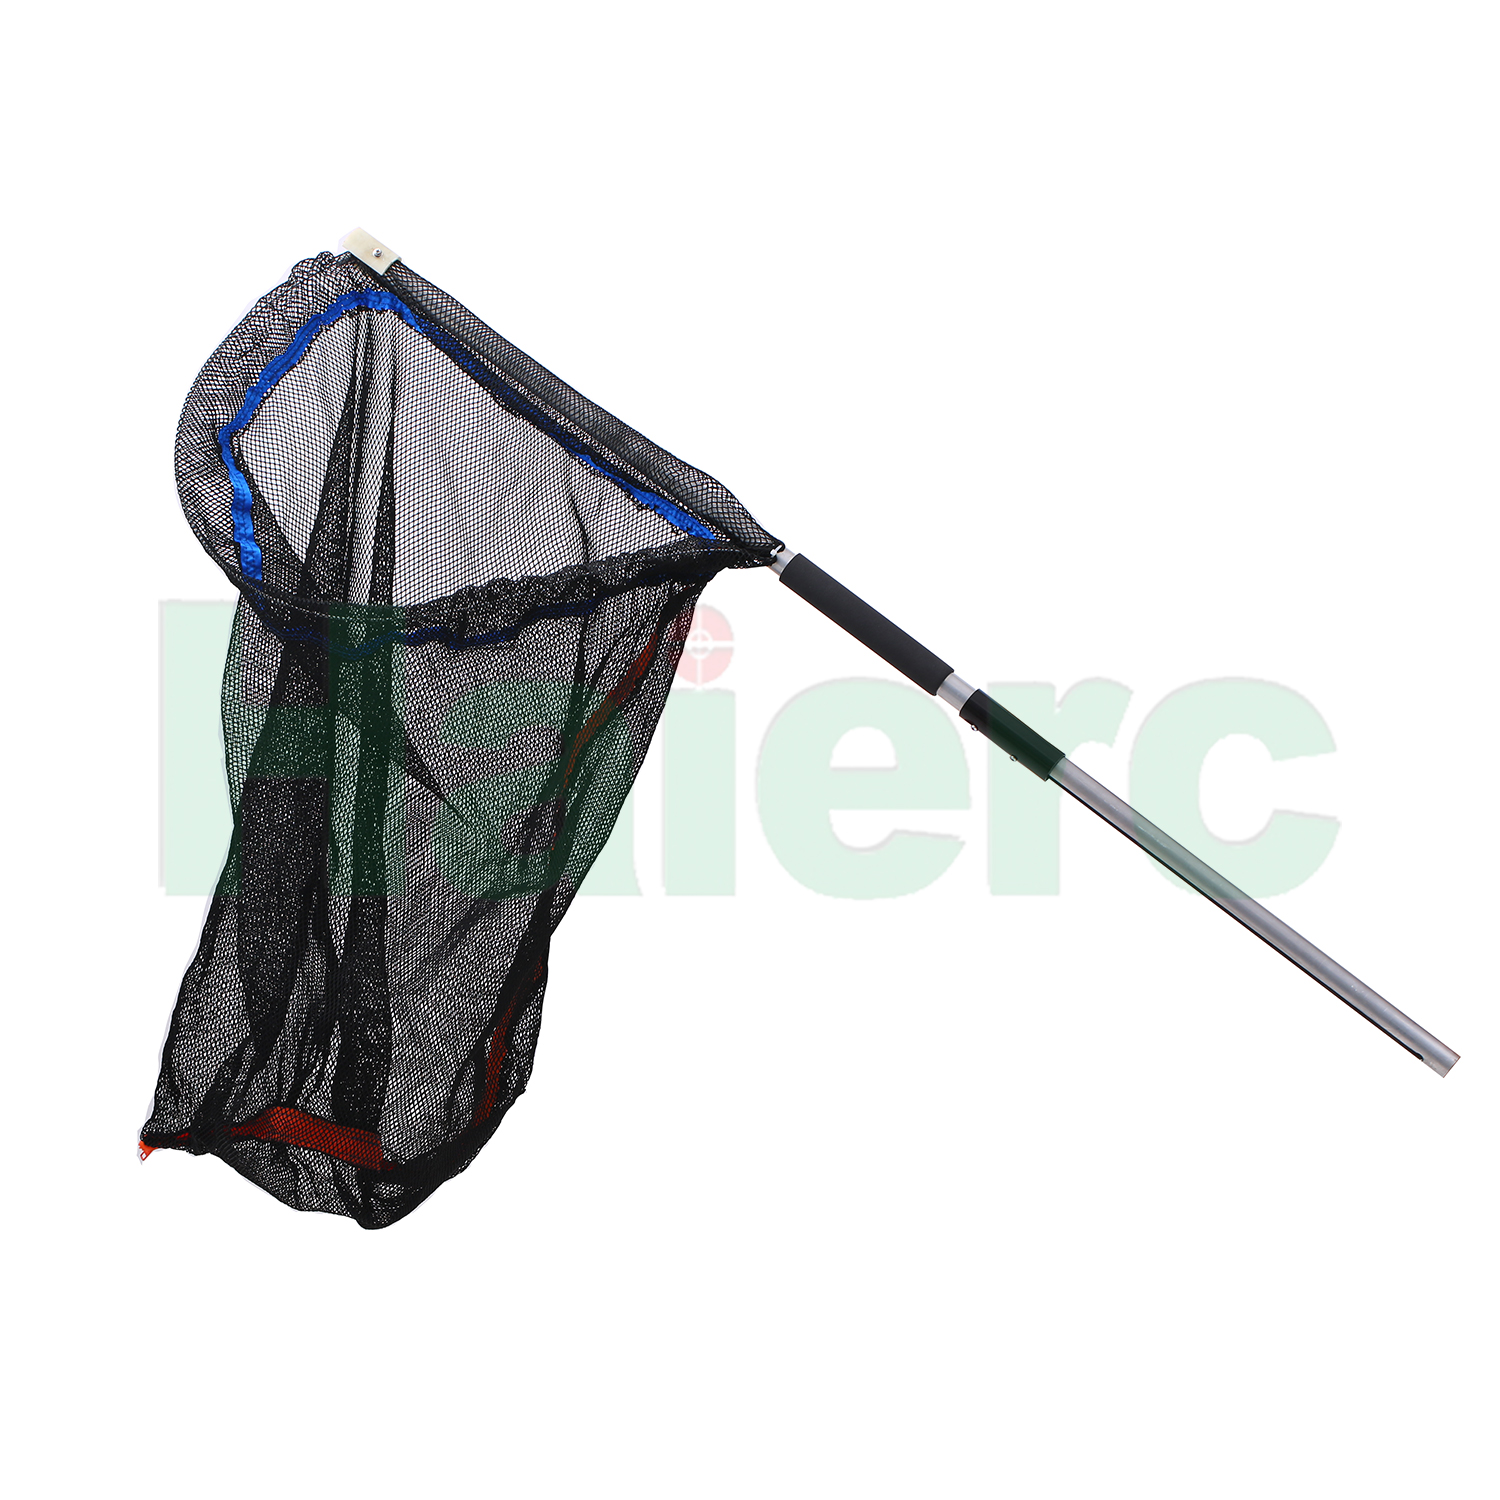 Haierc Long Handle Outdoor Catching Fishes Net Wildcat Net HC3301